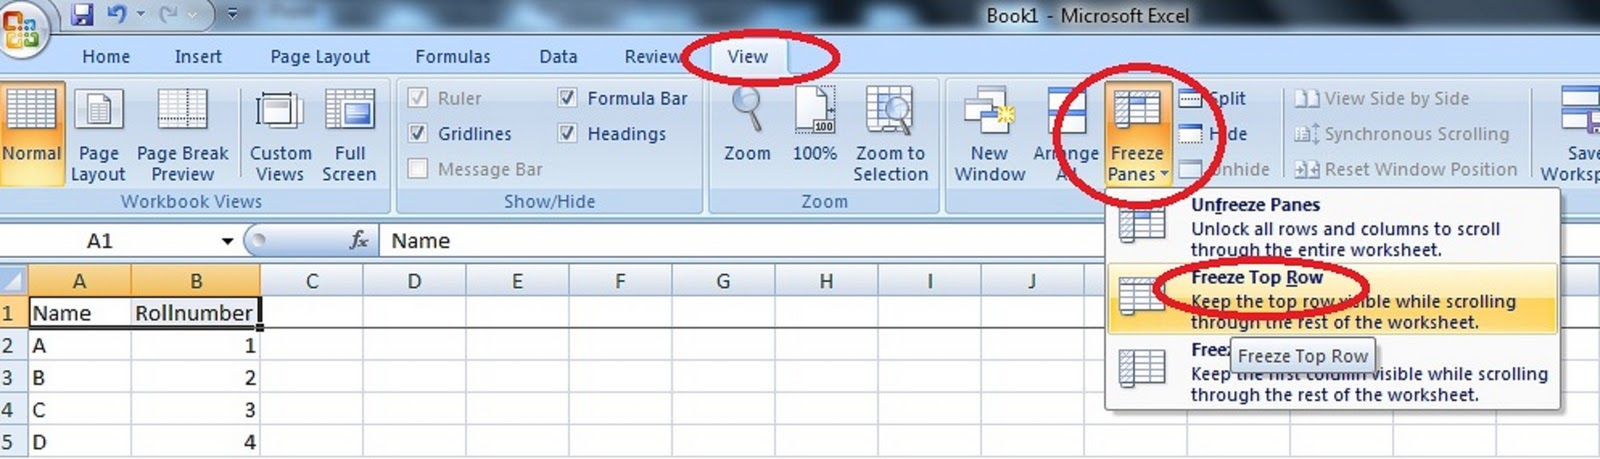 How To Fix Or Freeze Header In Microsoft Excel 2007